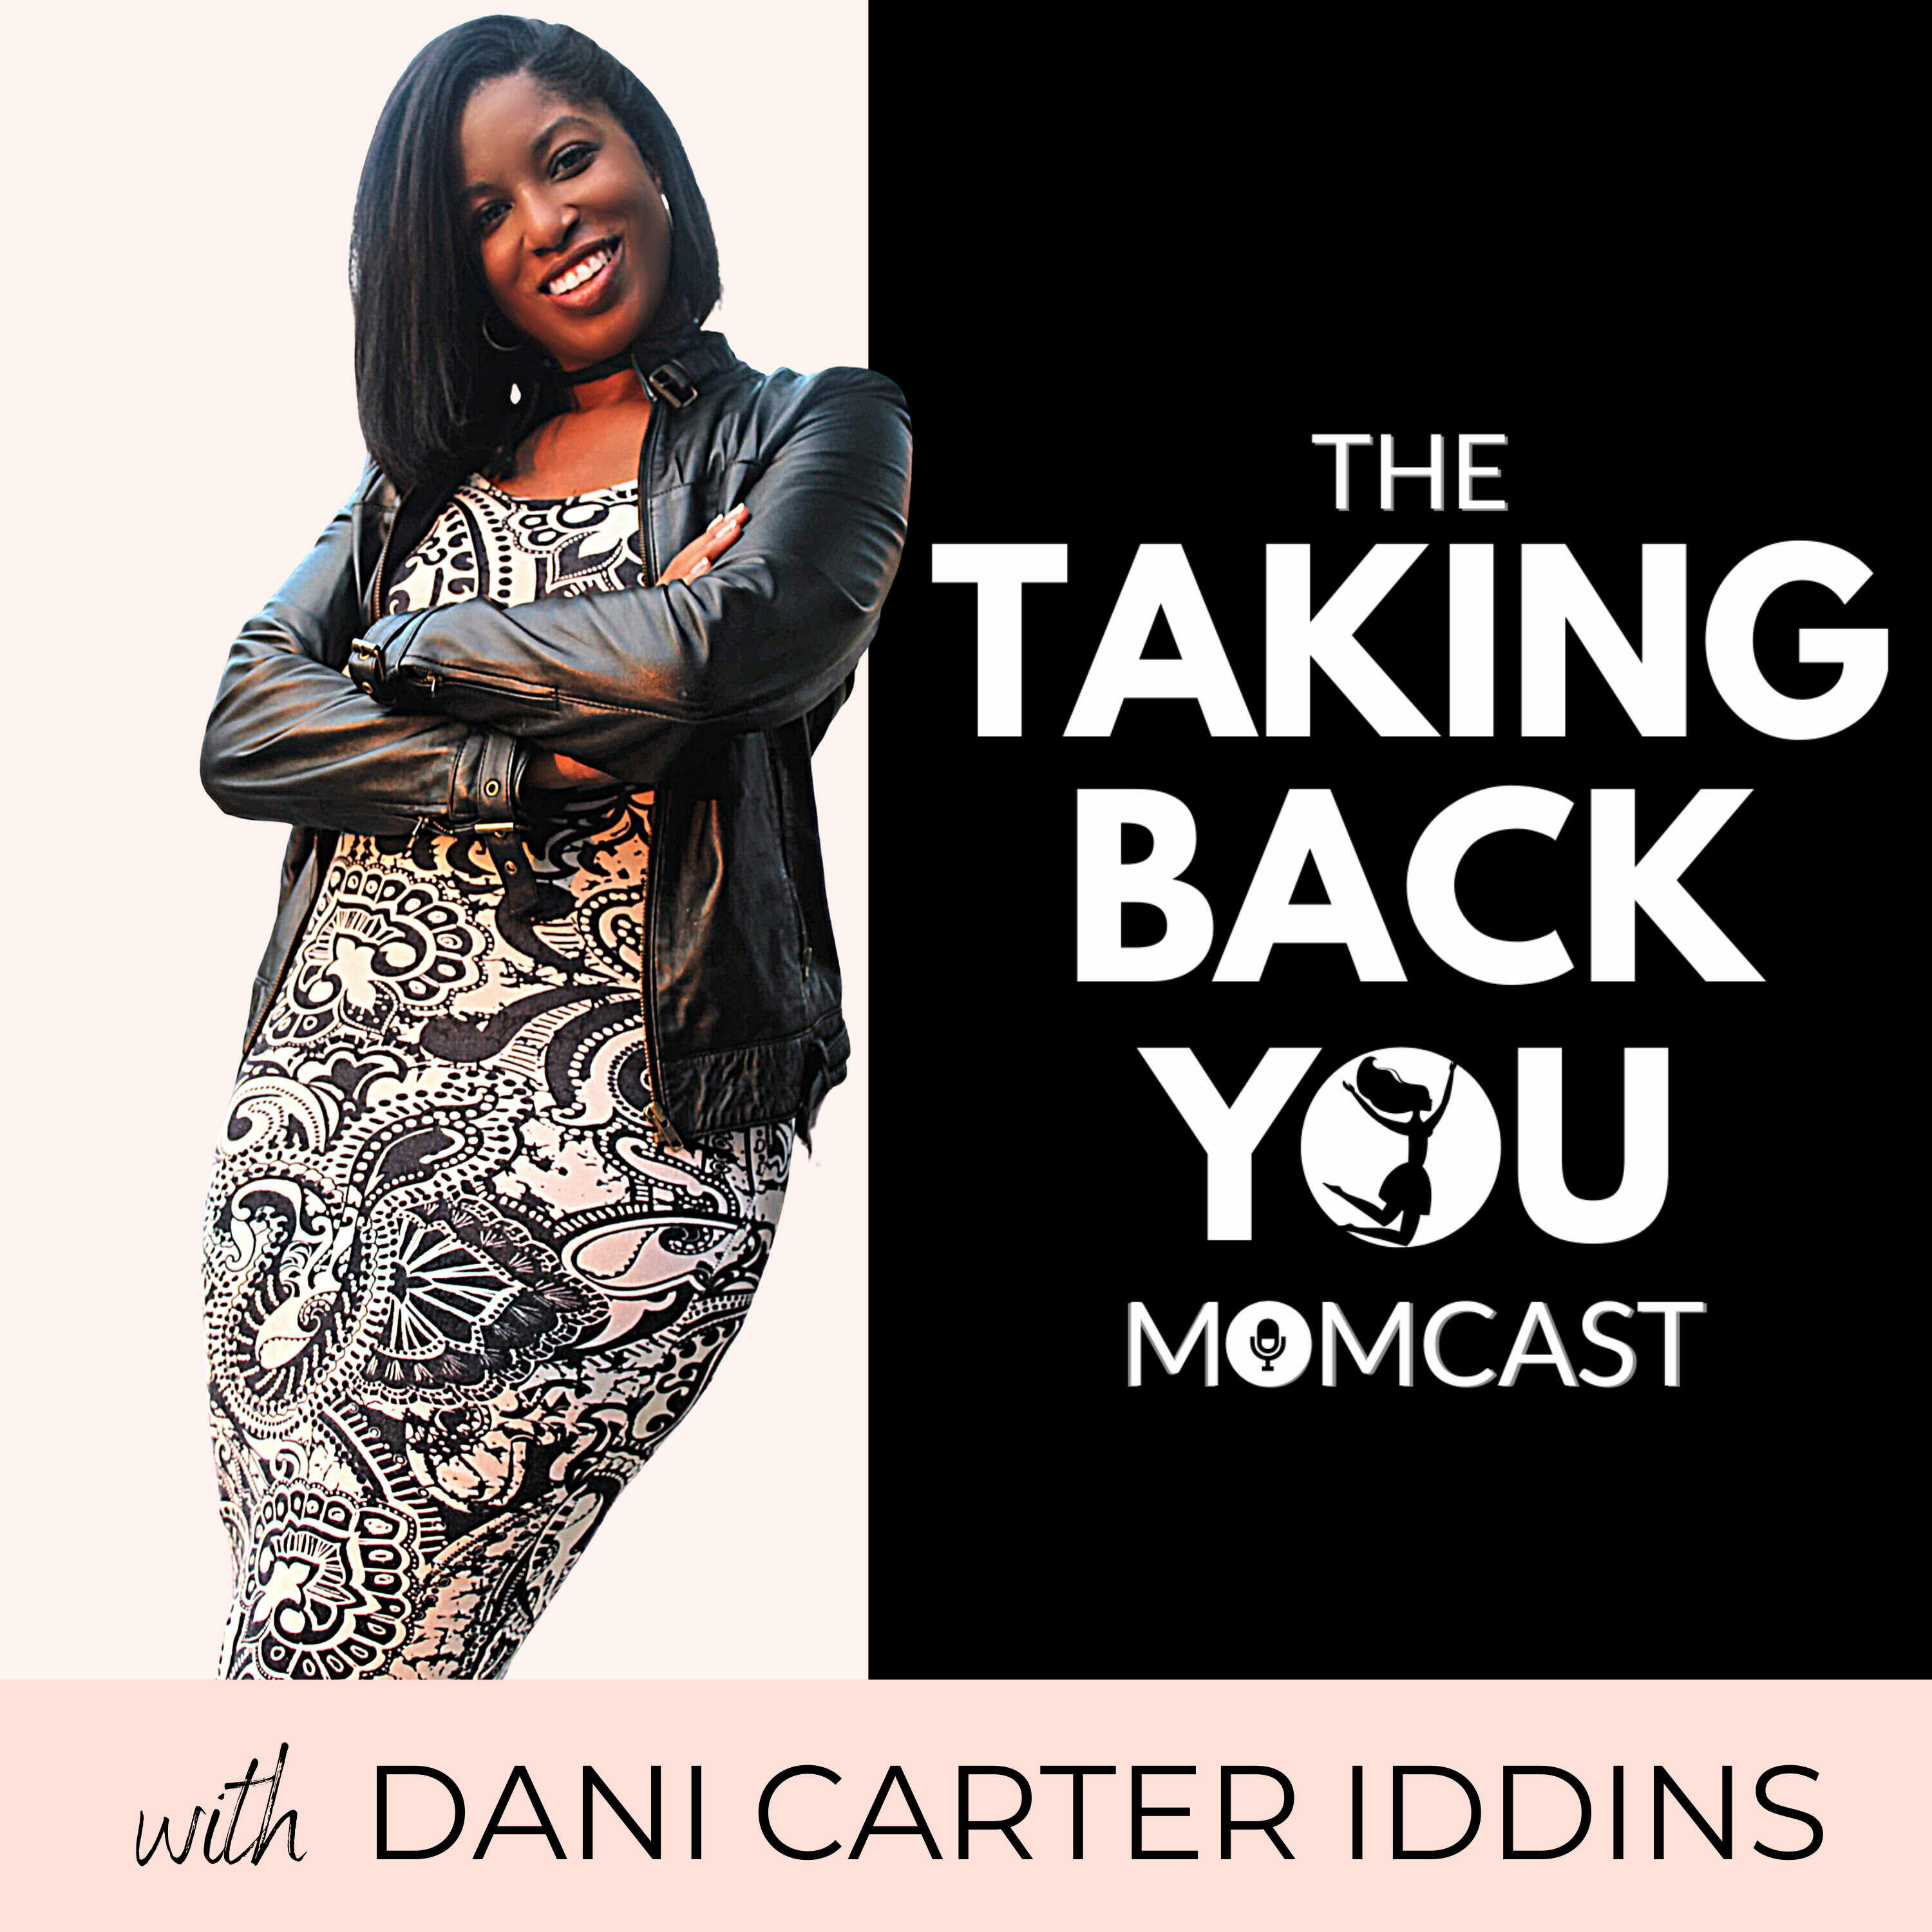 The Taking Back YOU Momcast